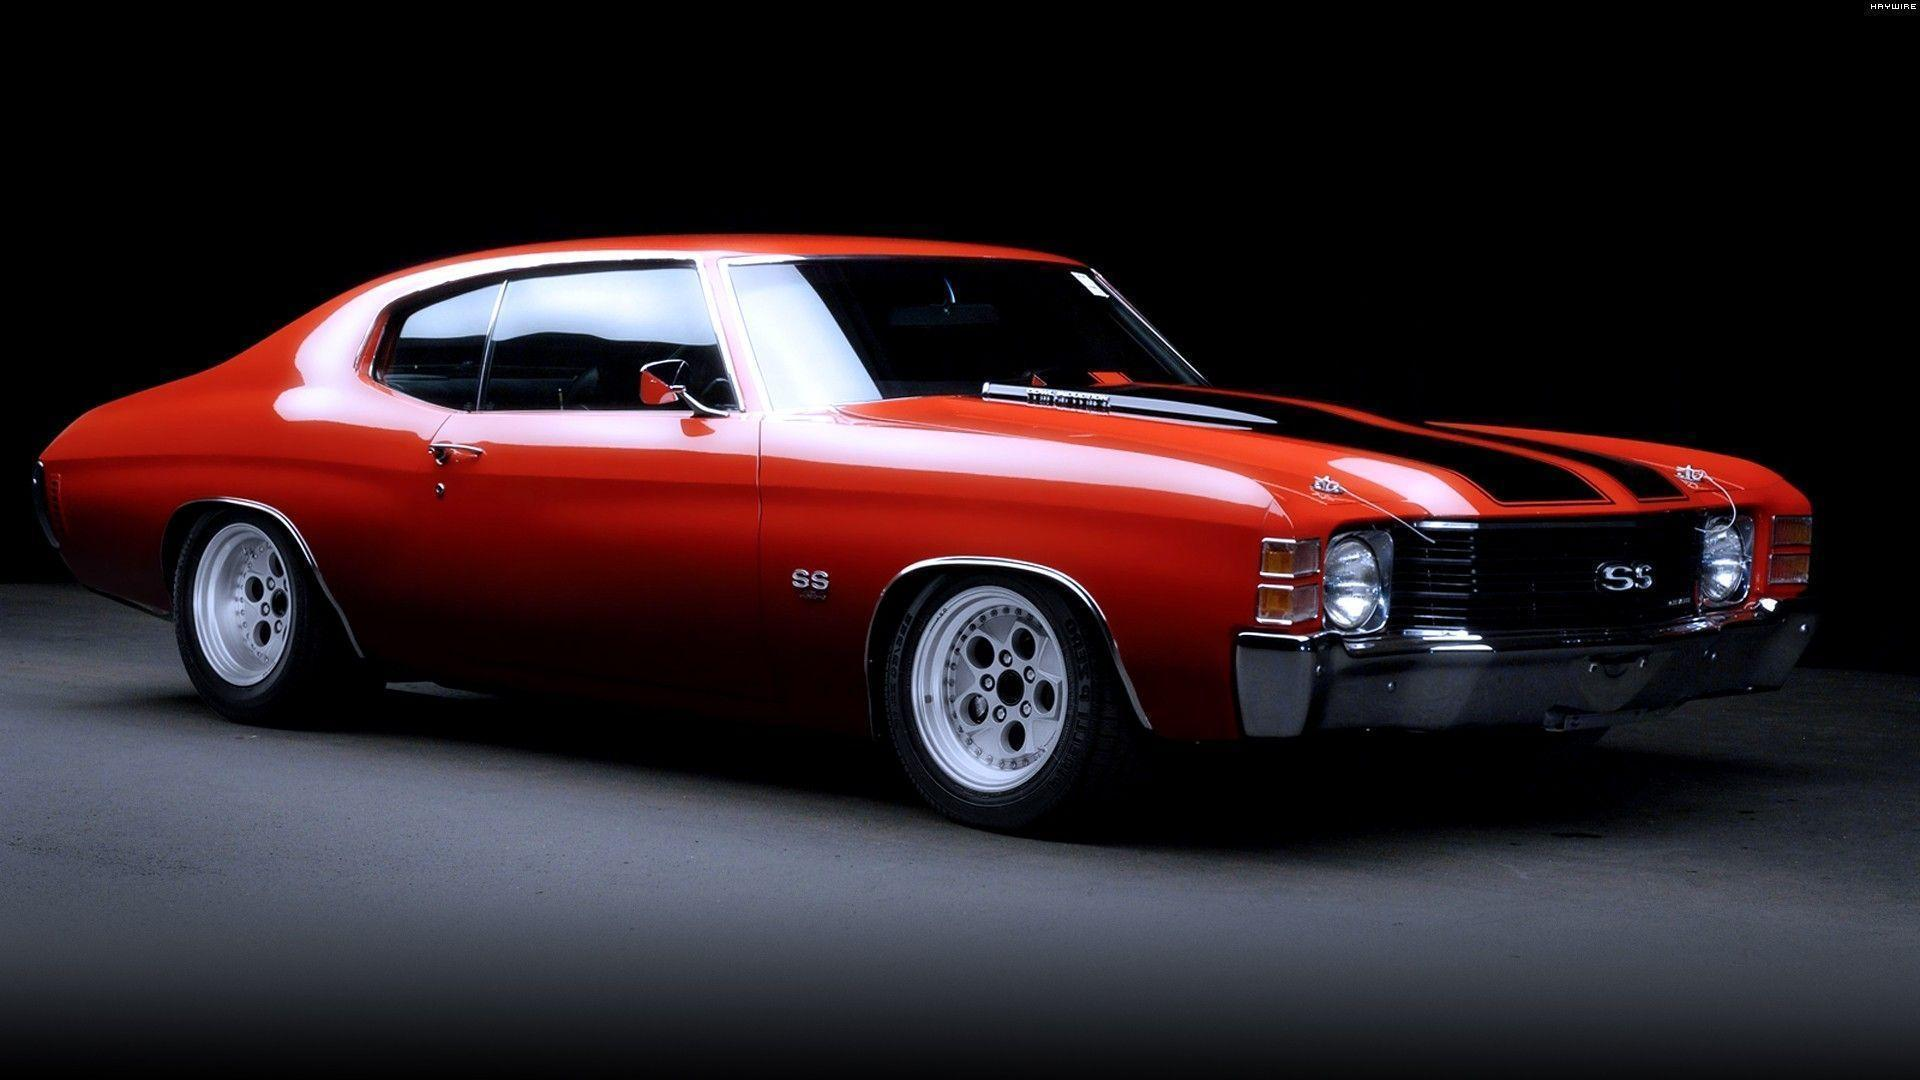 Muscle Cars Wallpapers High Resolution - 146.2KB